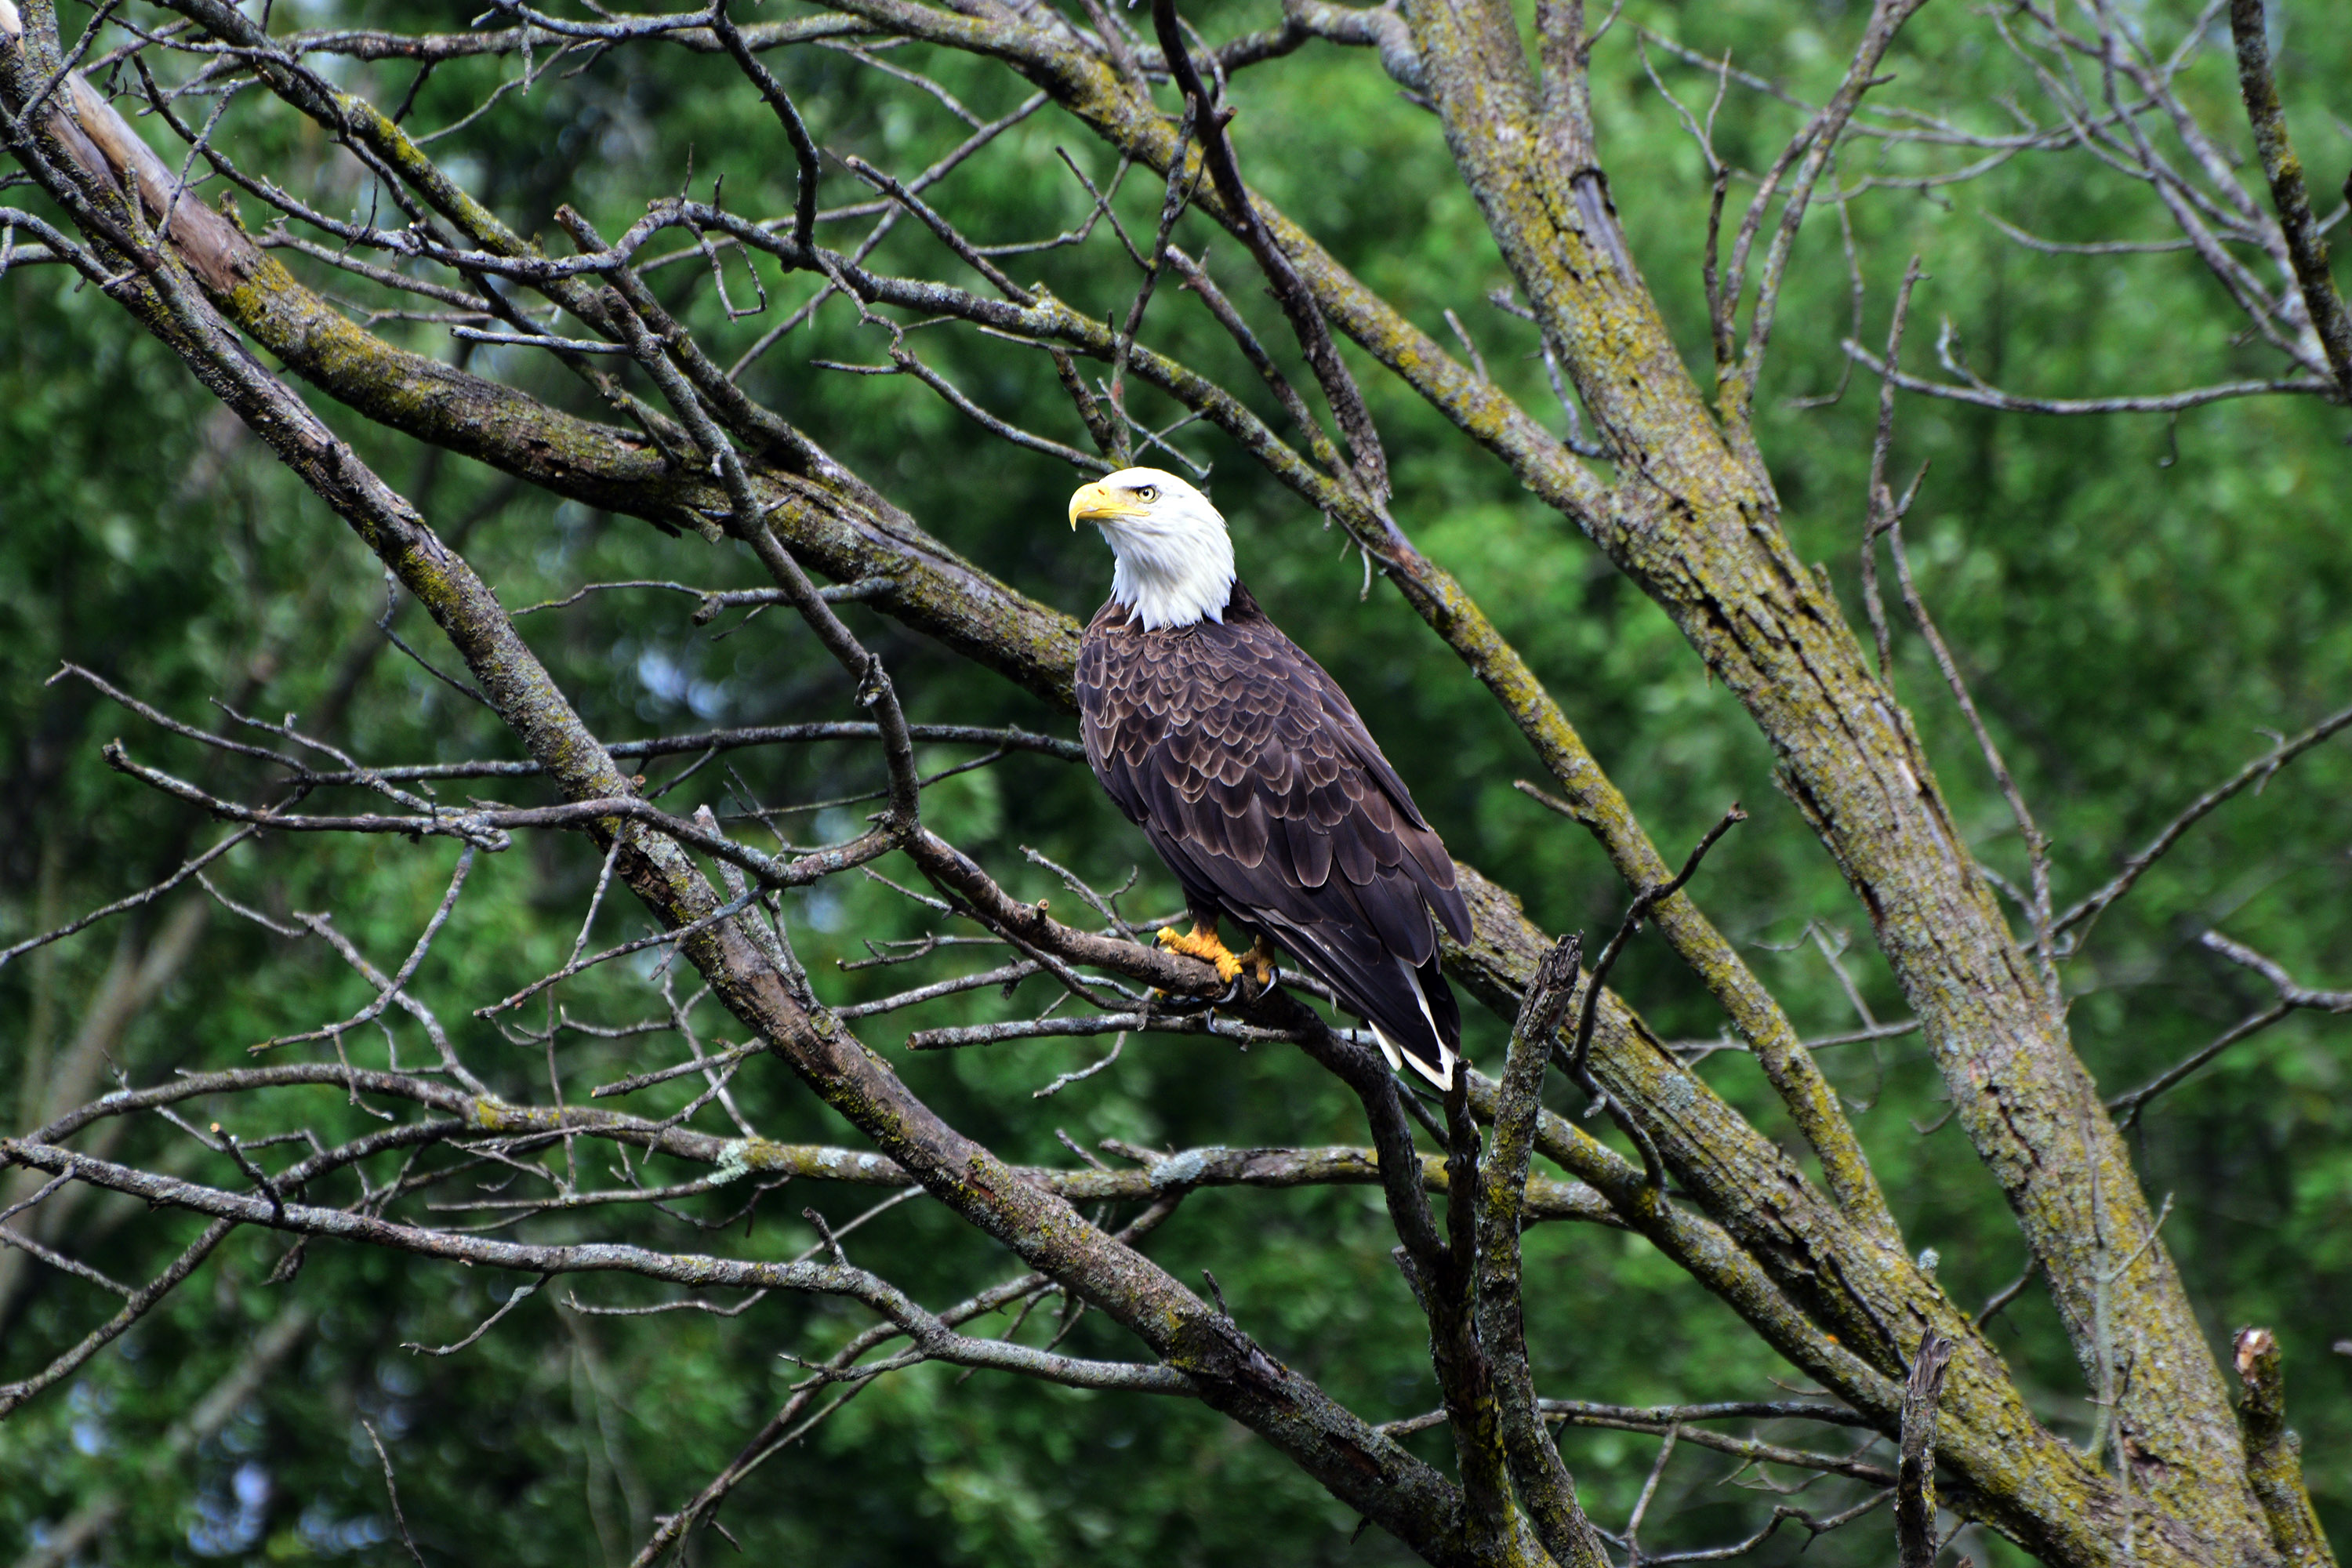 Bald eagle spotted in the Shiawassee National Wildlife Refuge